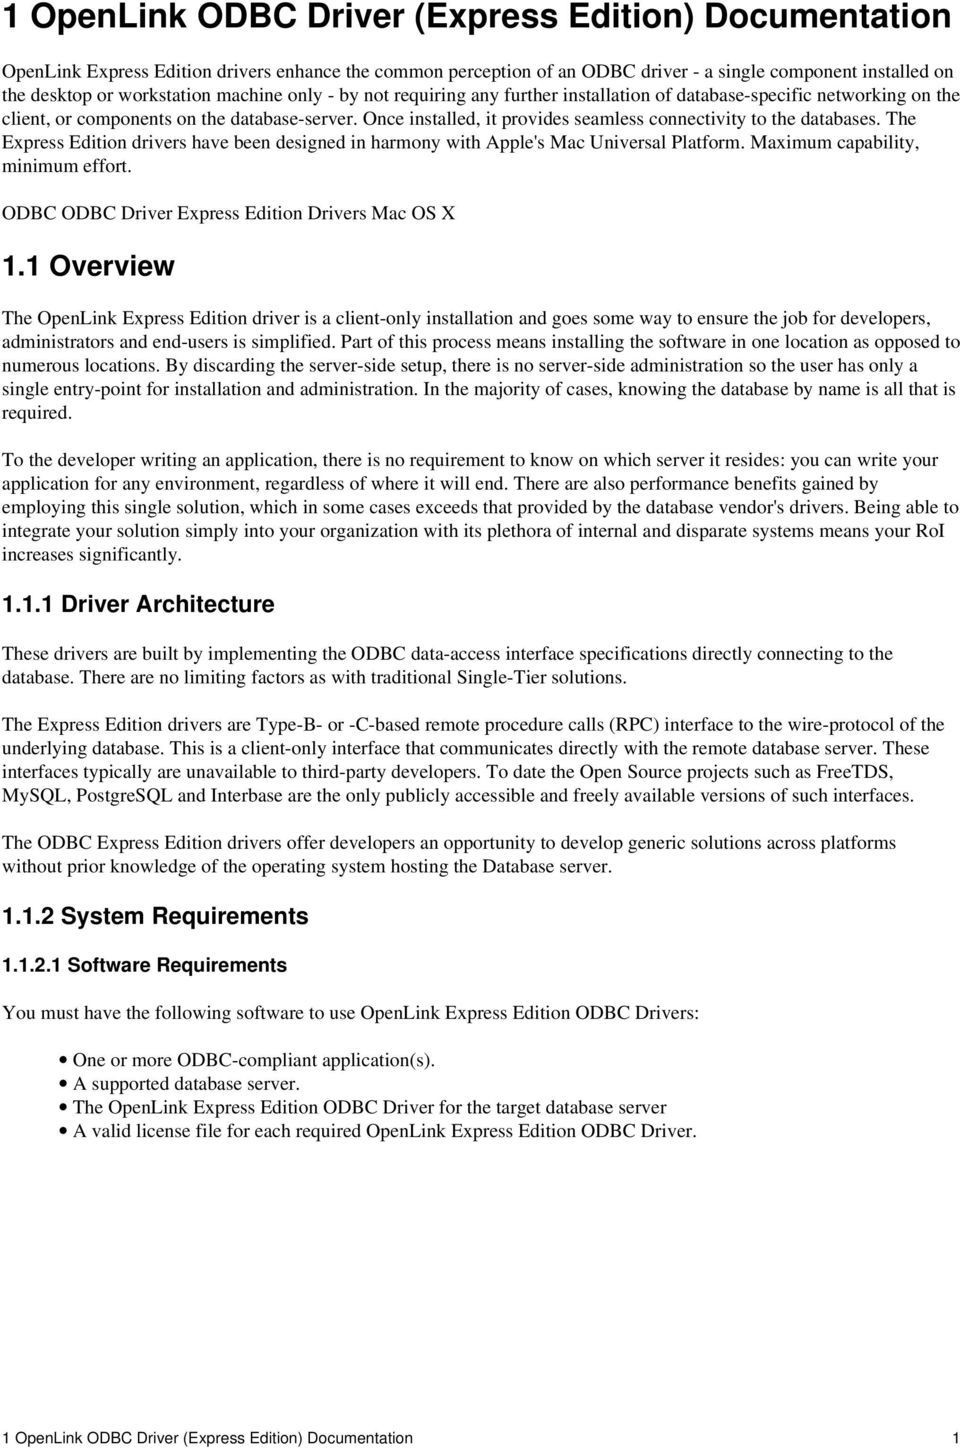 OpenLink ODBC Driver (Express Edition) User Guide - PDF